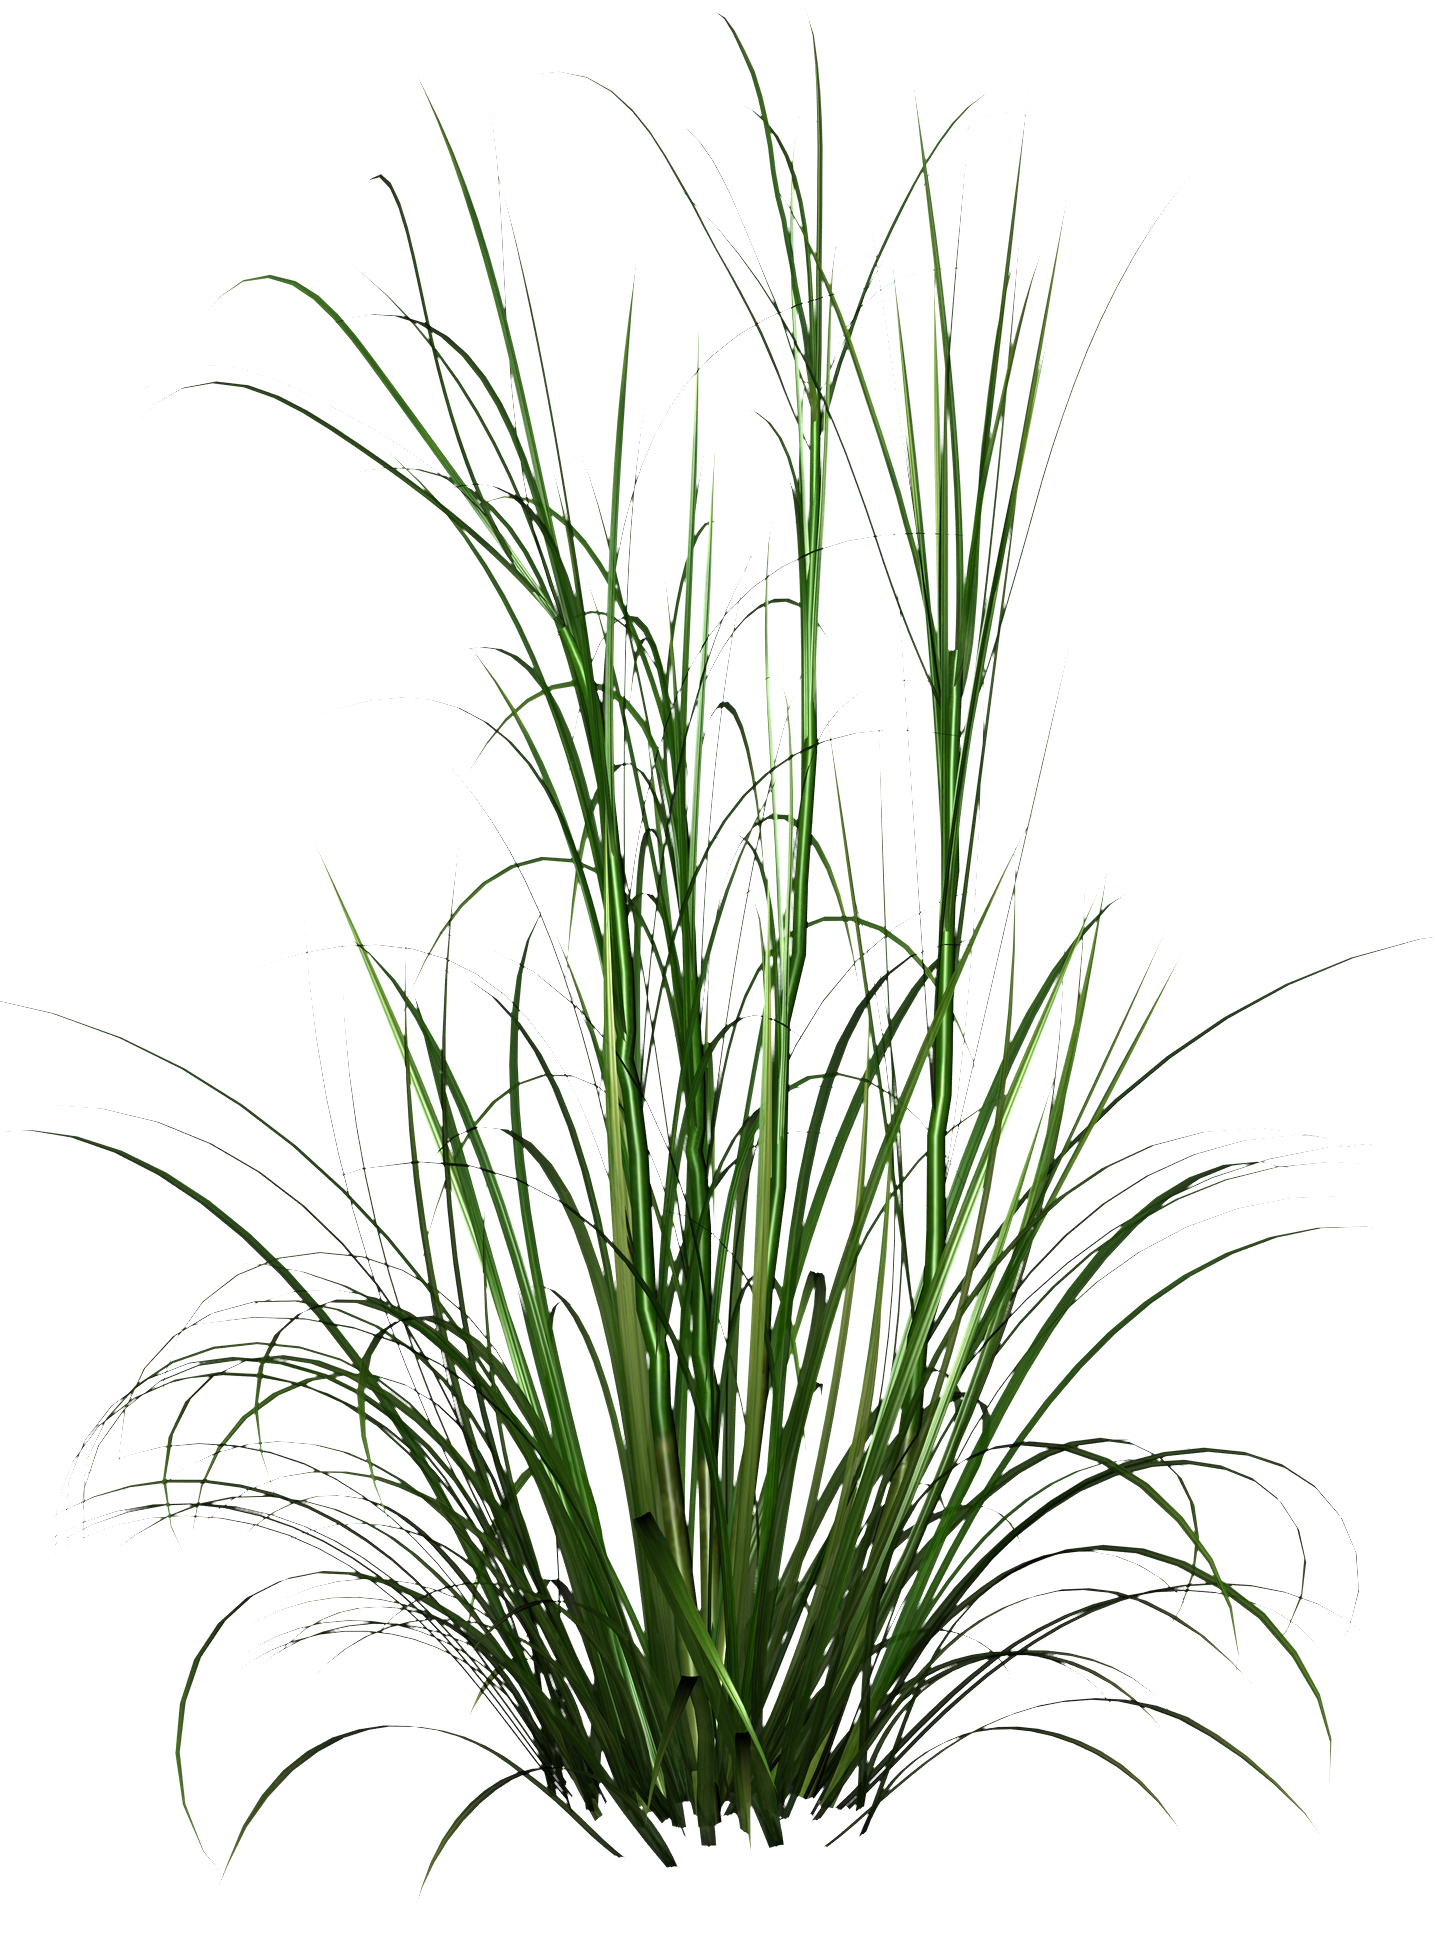 Png images hd. Tall grass photo free